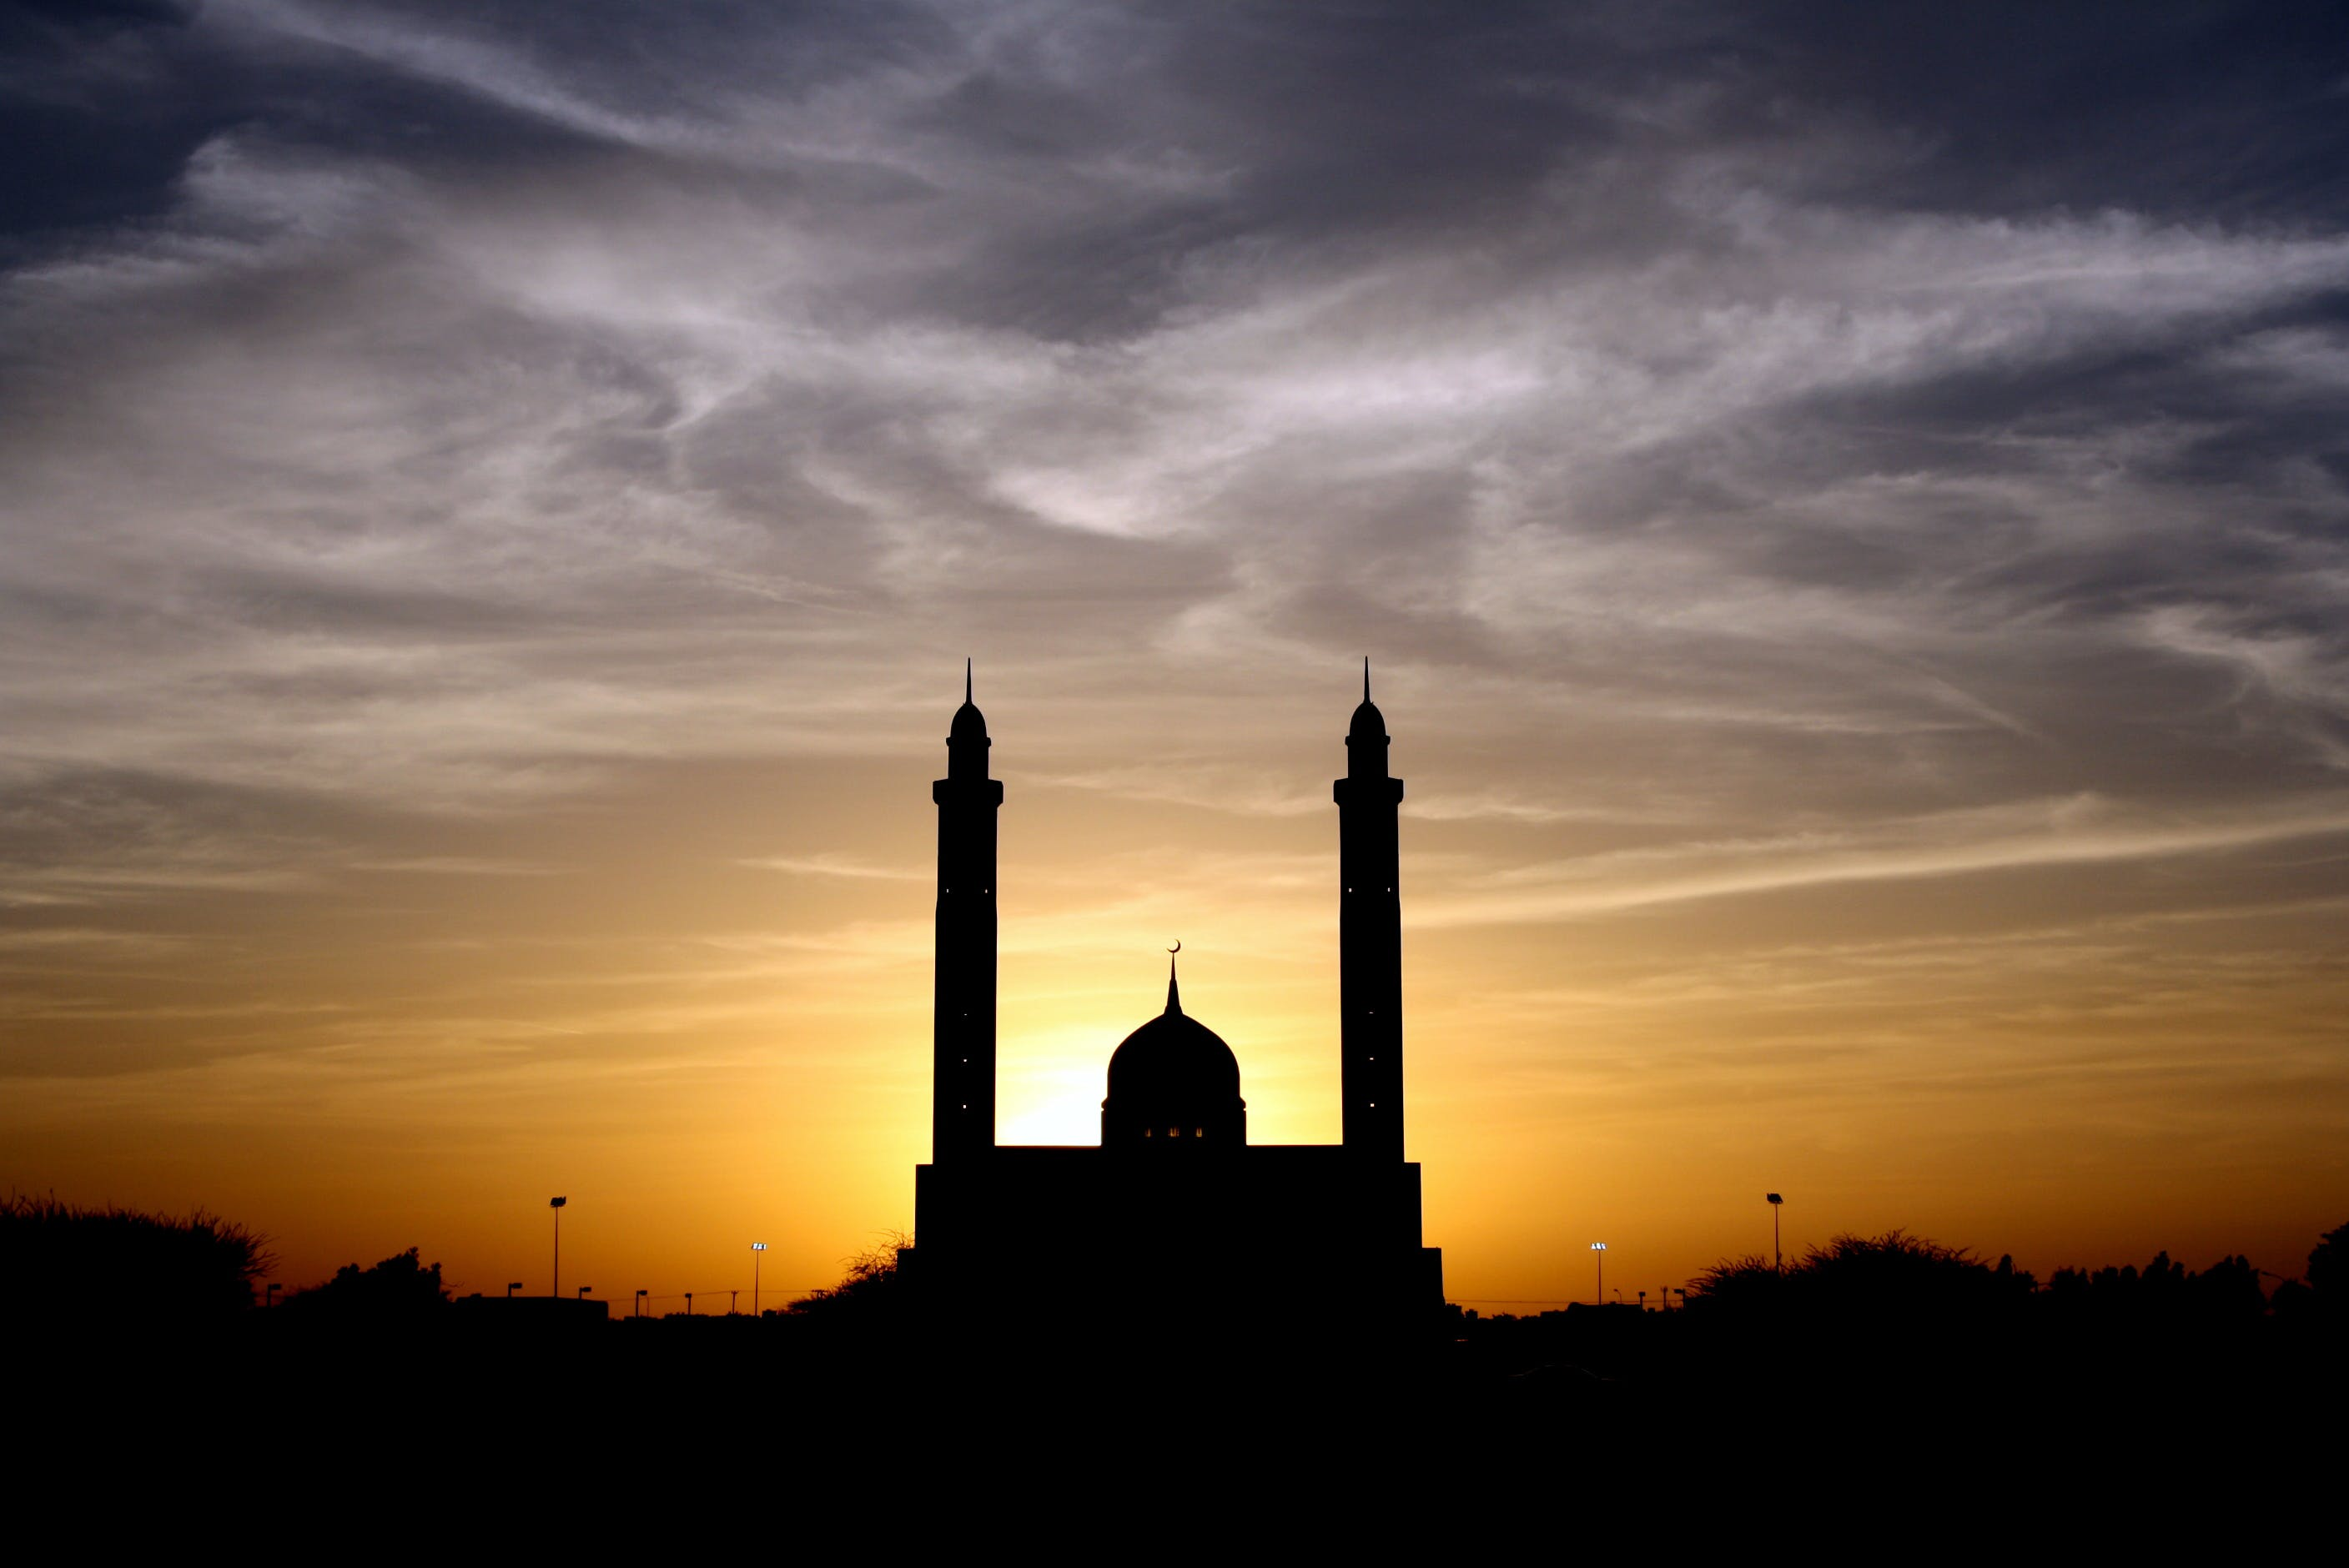 Silhouette of Mosque Below Cloudy Sky during Daytime